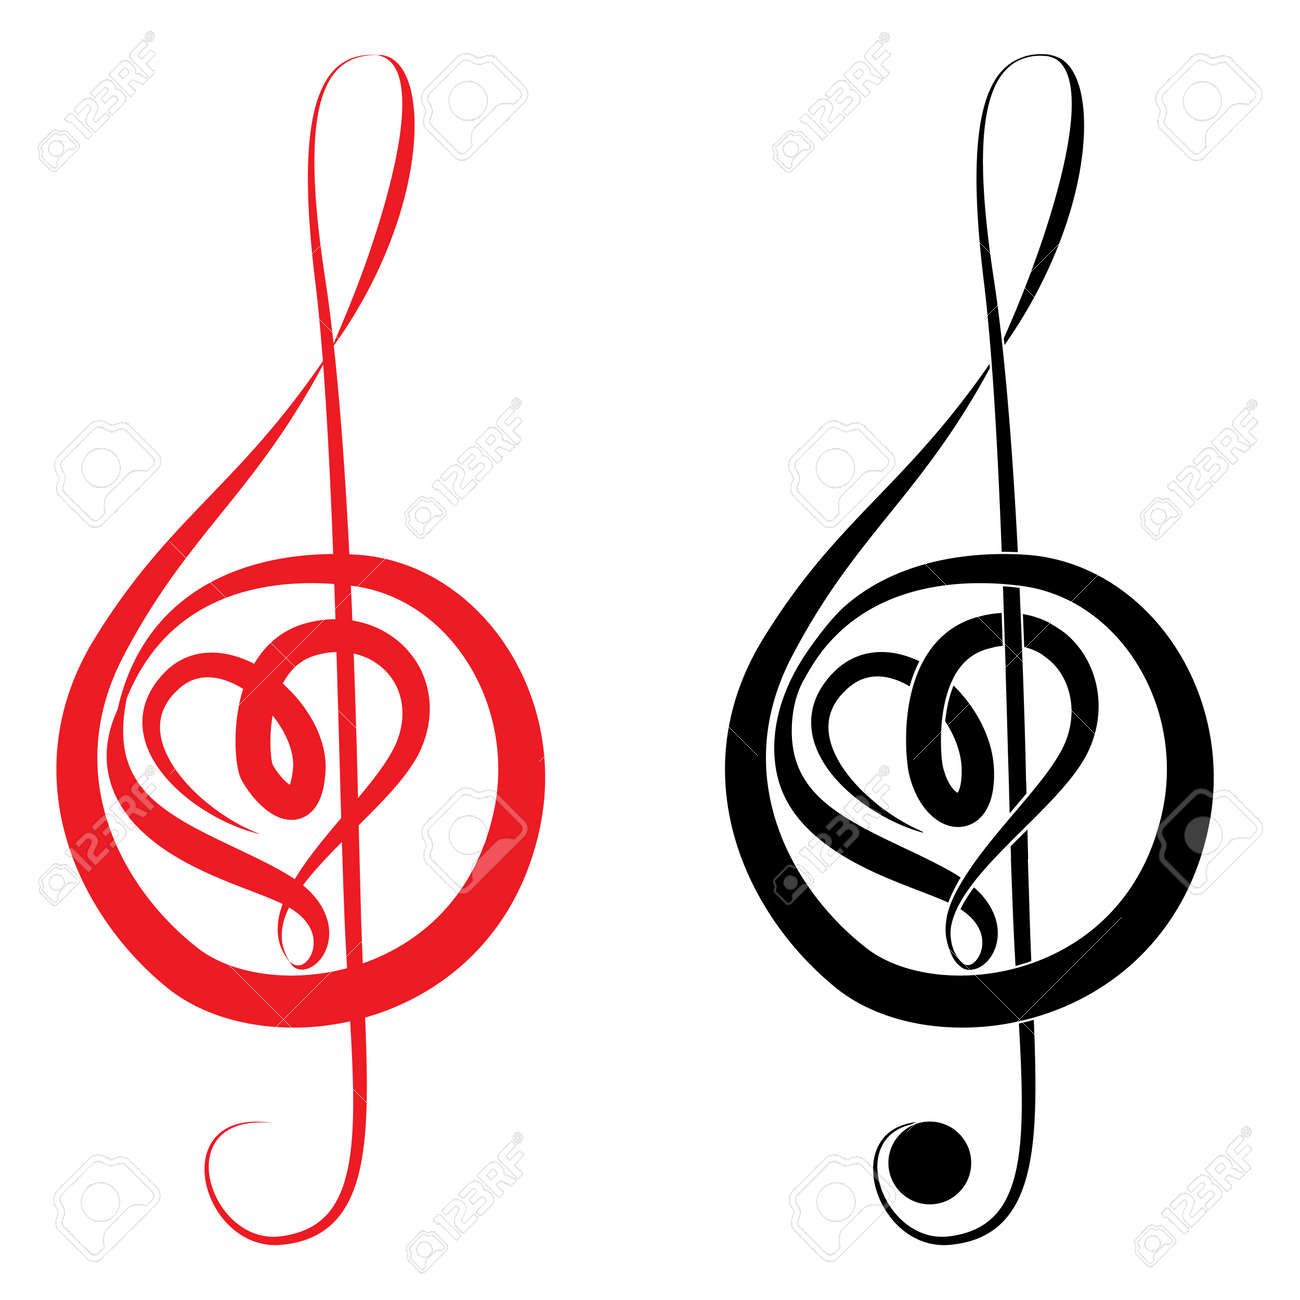 Music Clefs Heart Heart of Treble Clef And Bass